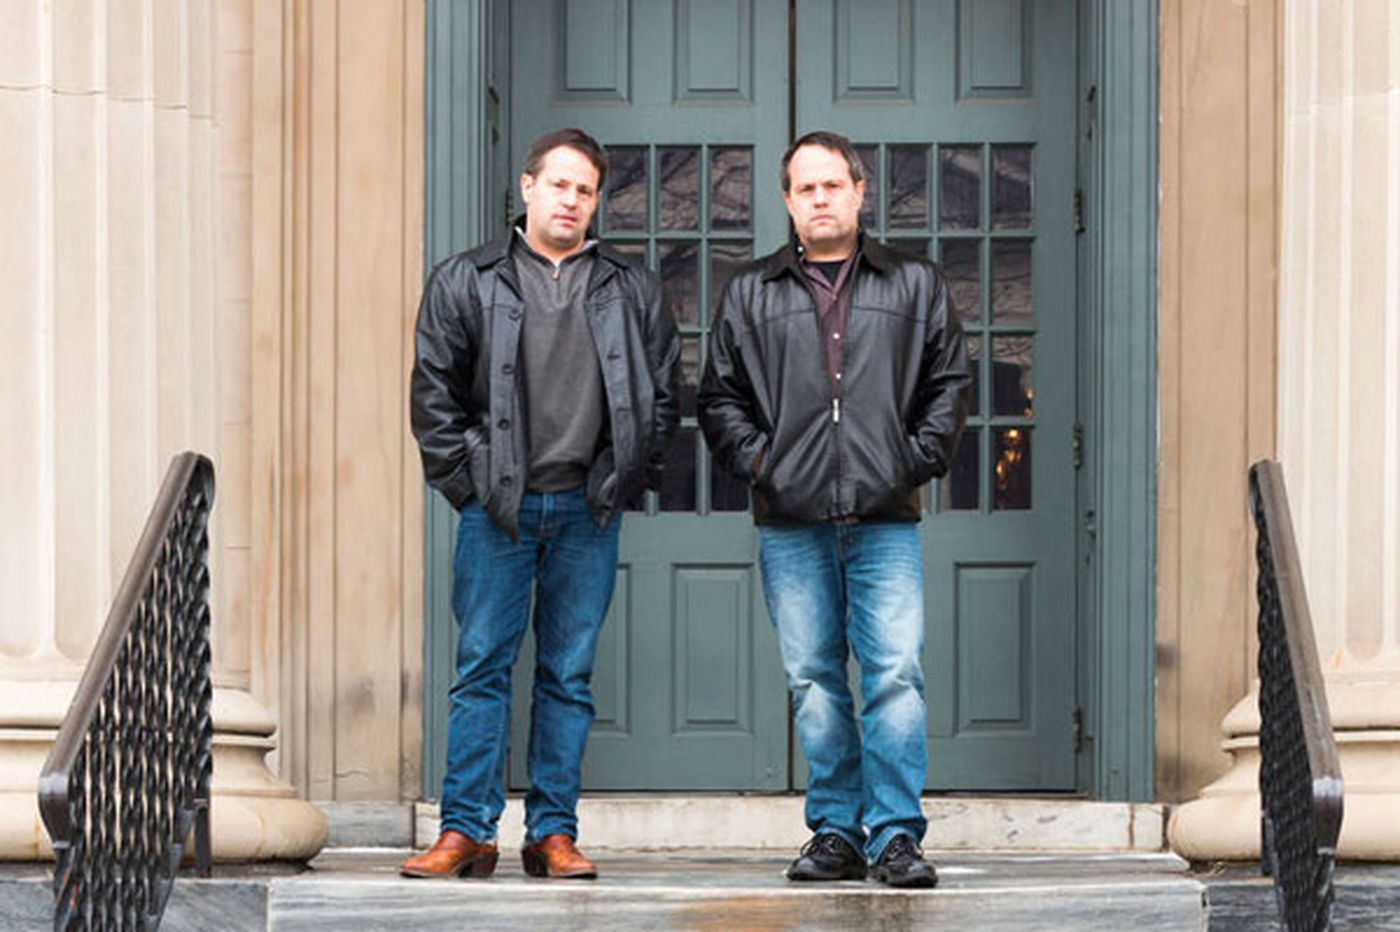 PhillyDeals: Brothers rack up miles in a fight against the feds